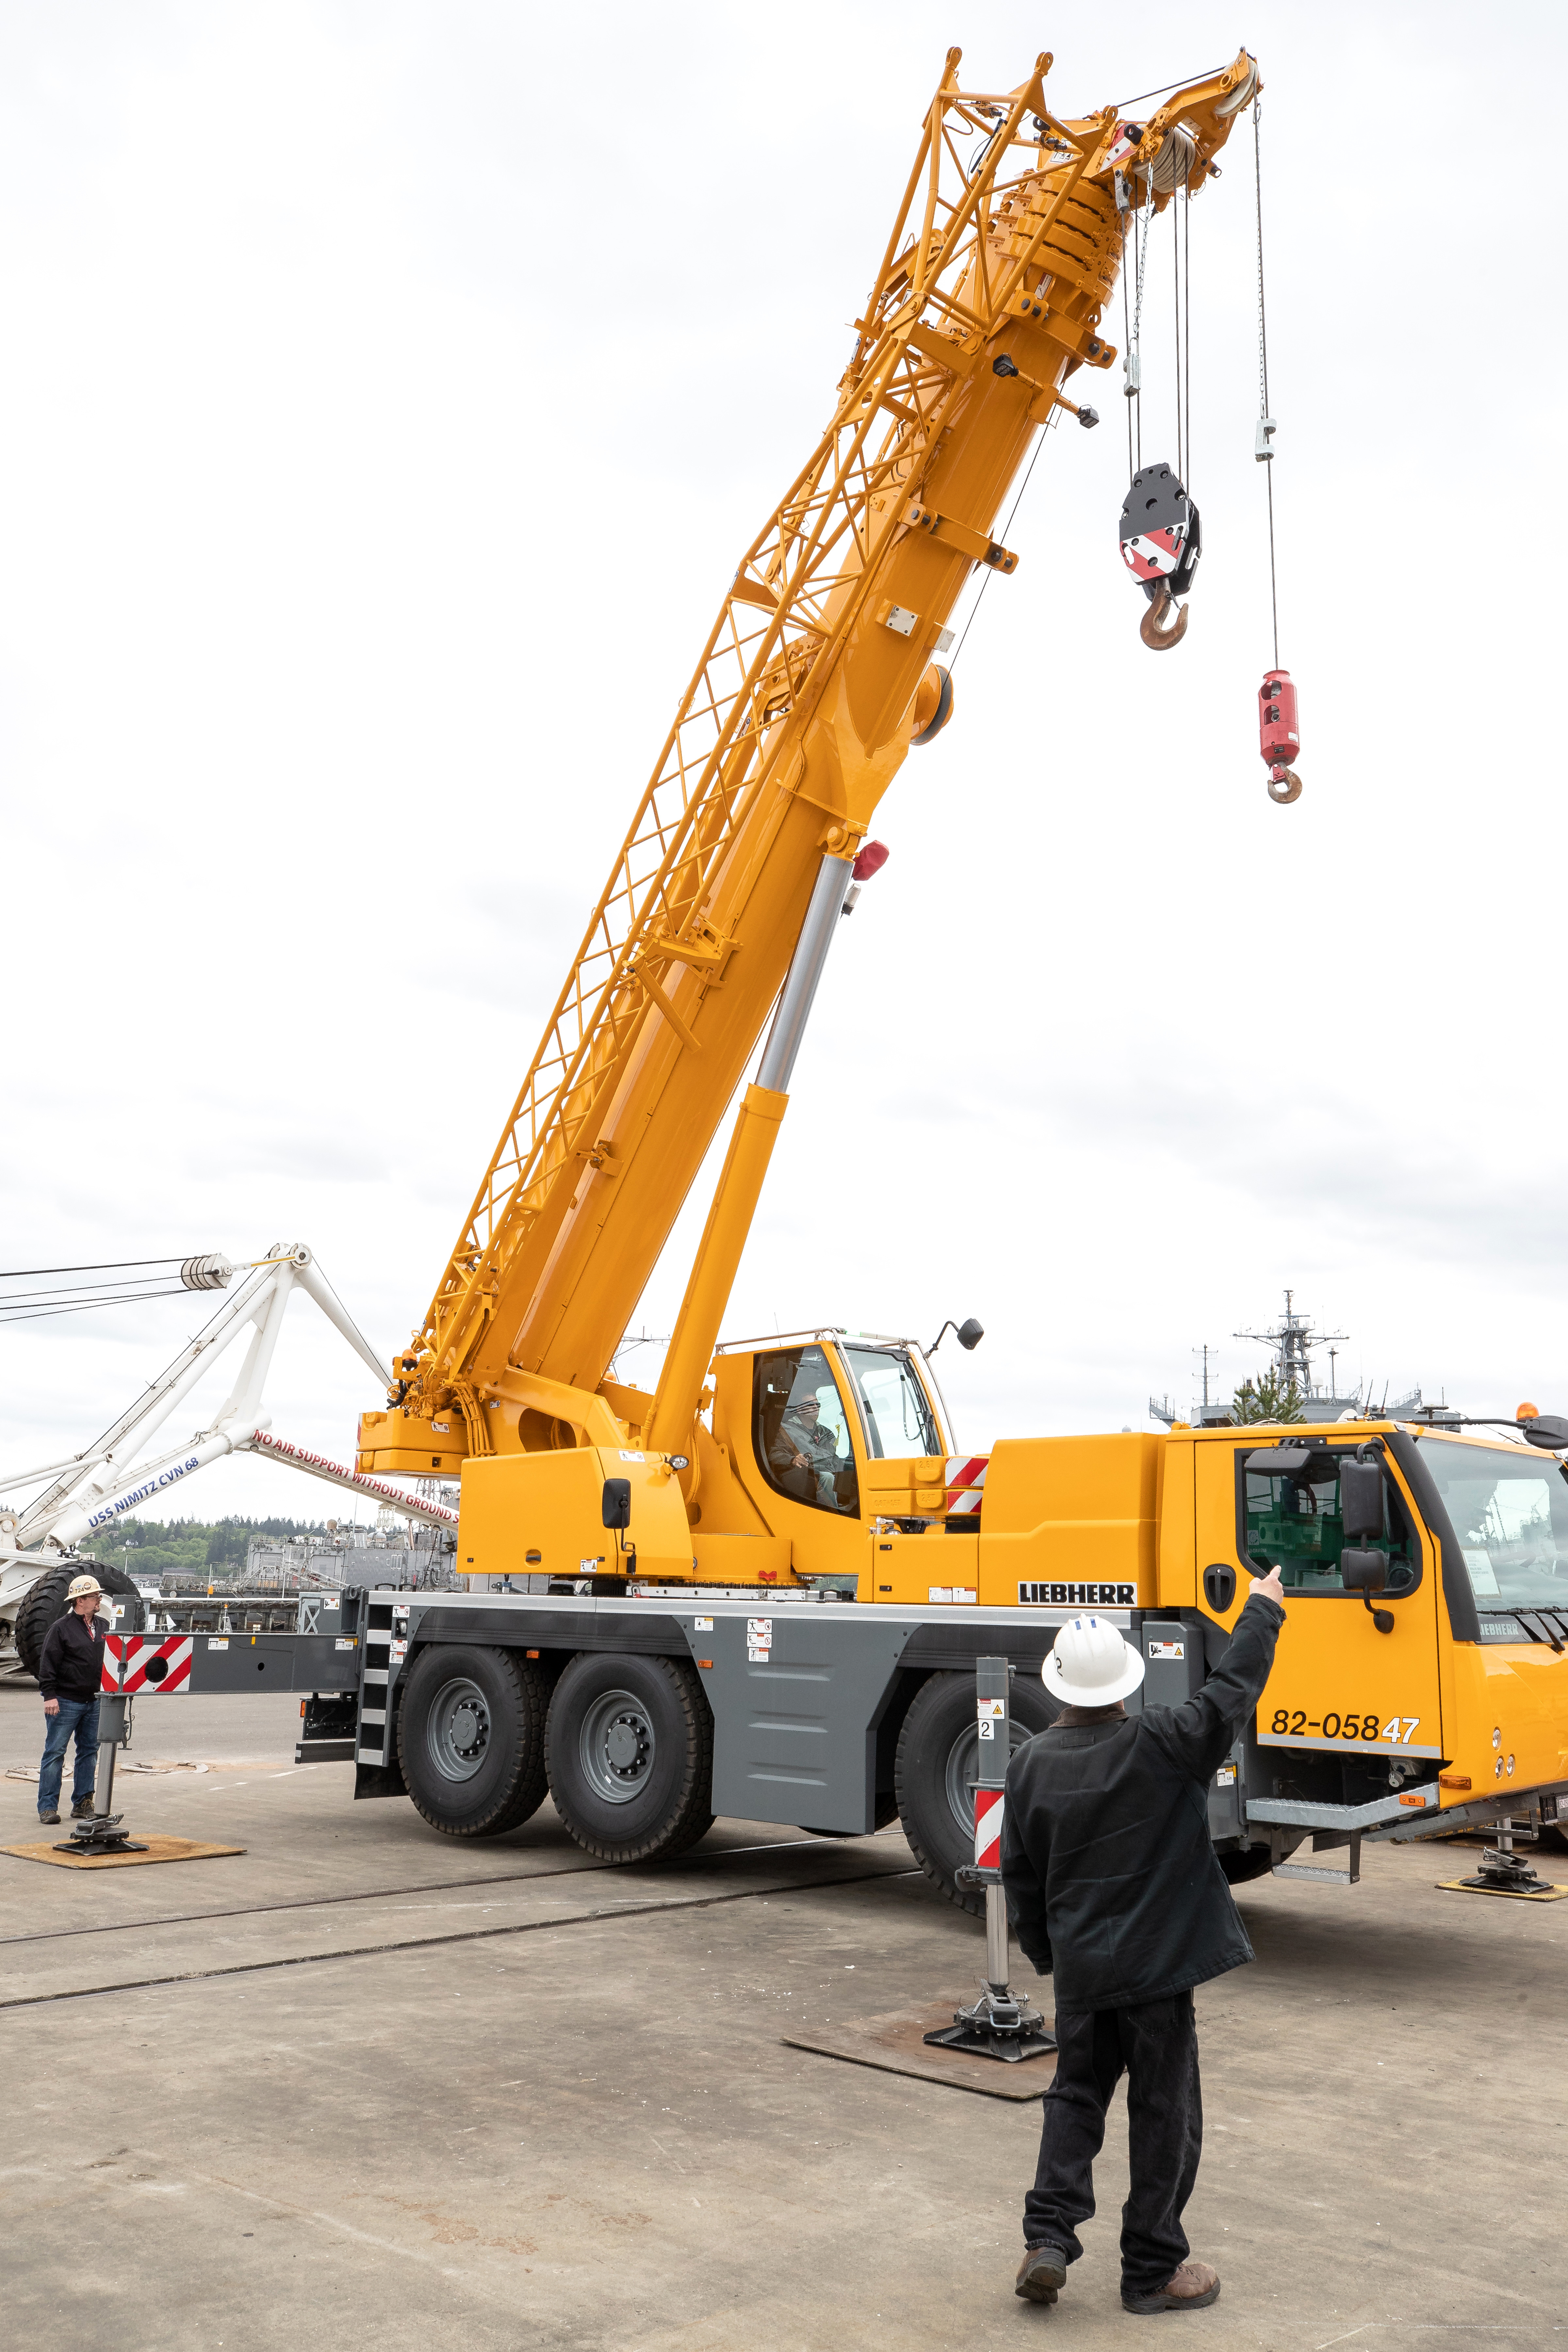 Shipyard rolls out first of four mobile cranes > Naval Sea